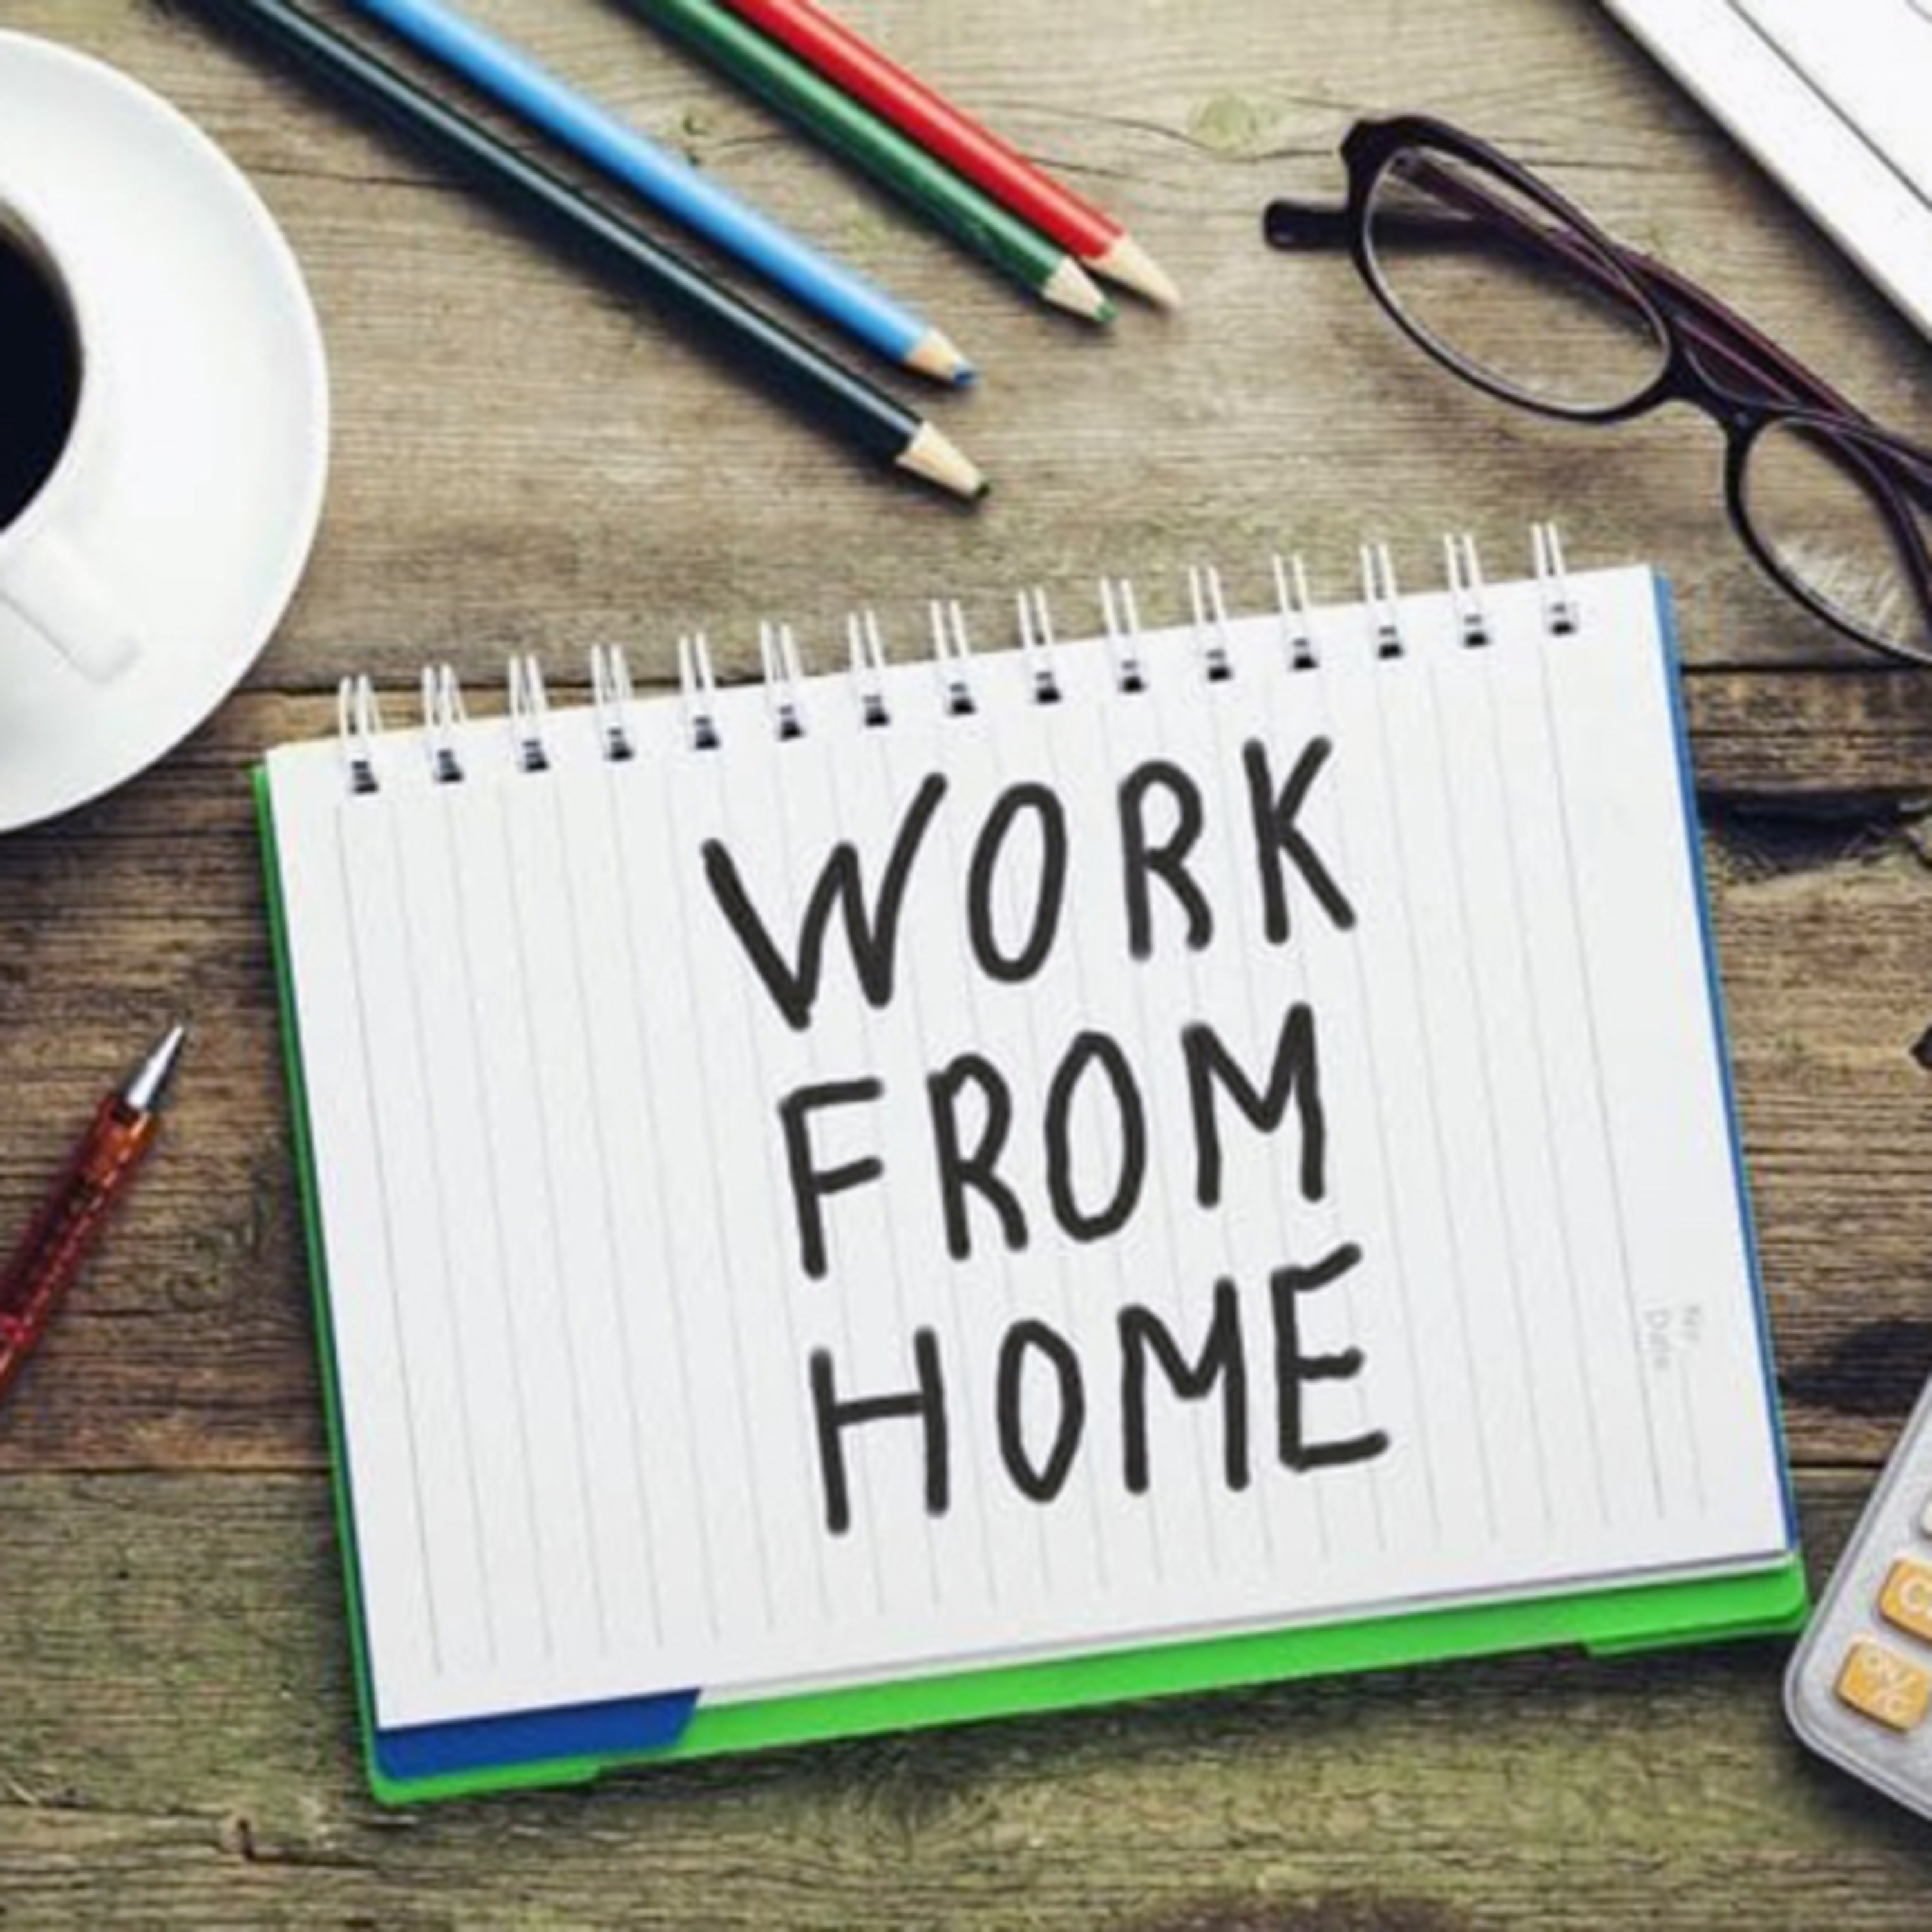 #10 WFH (Work from home)